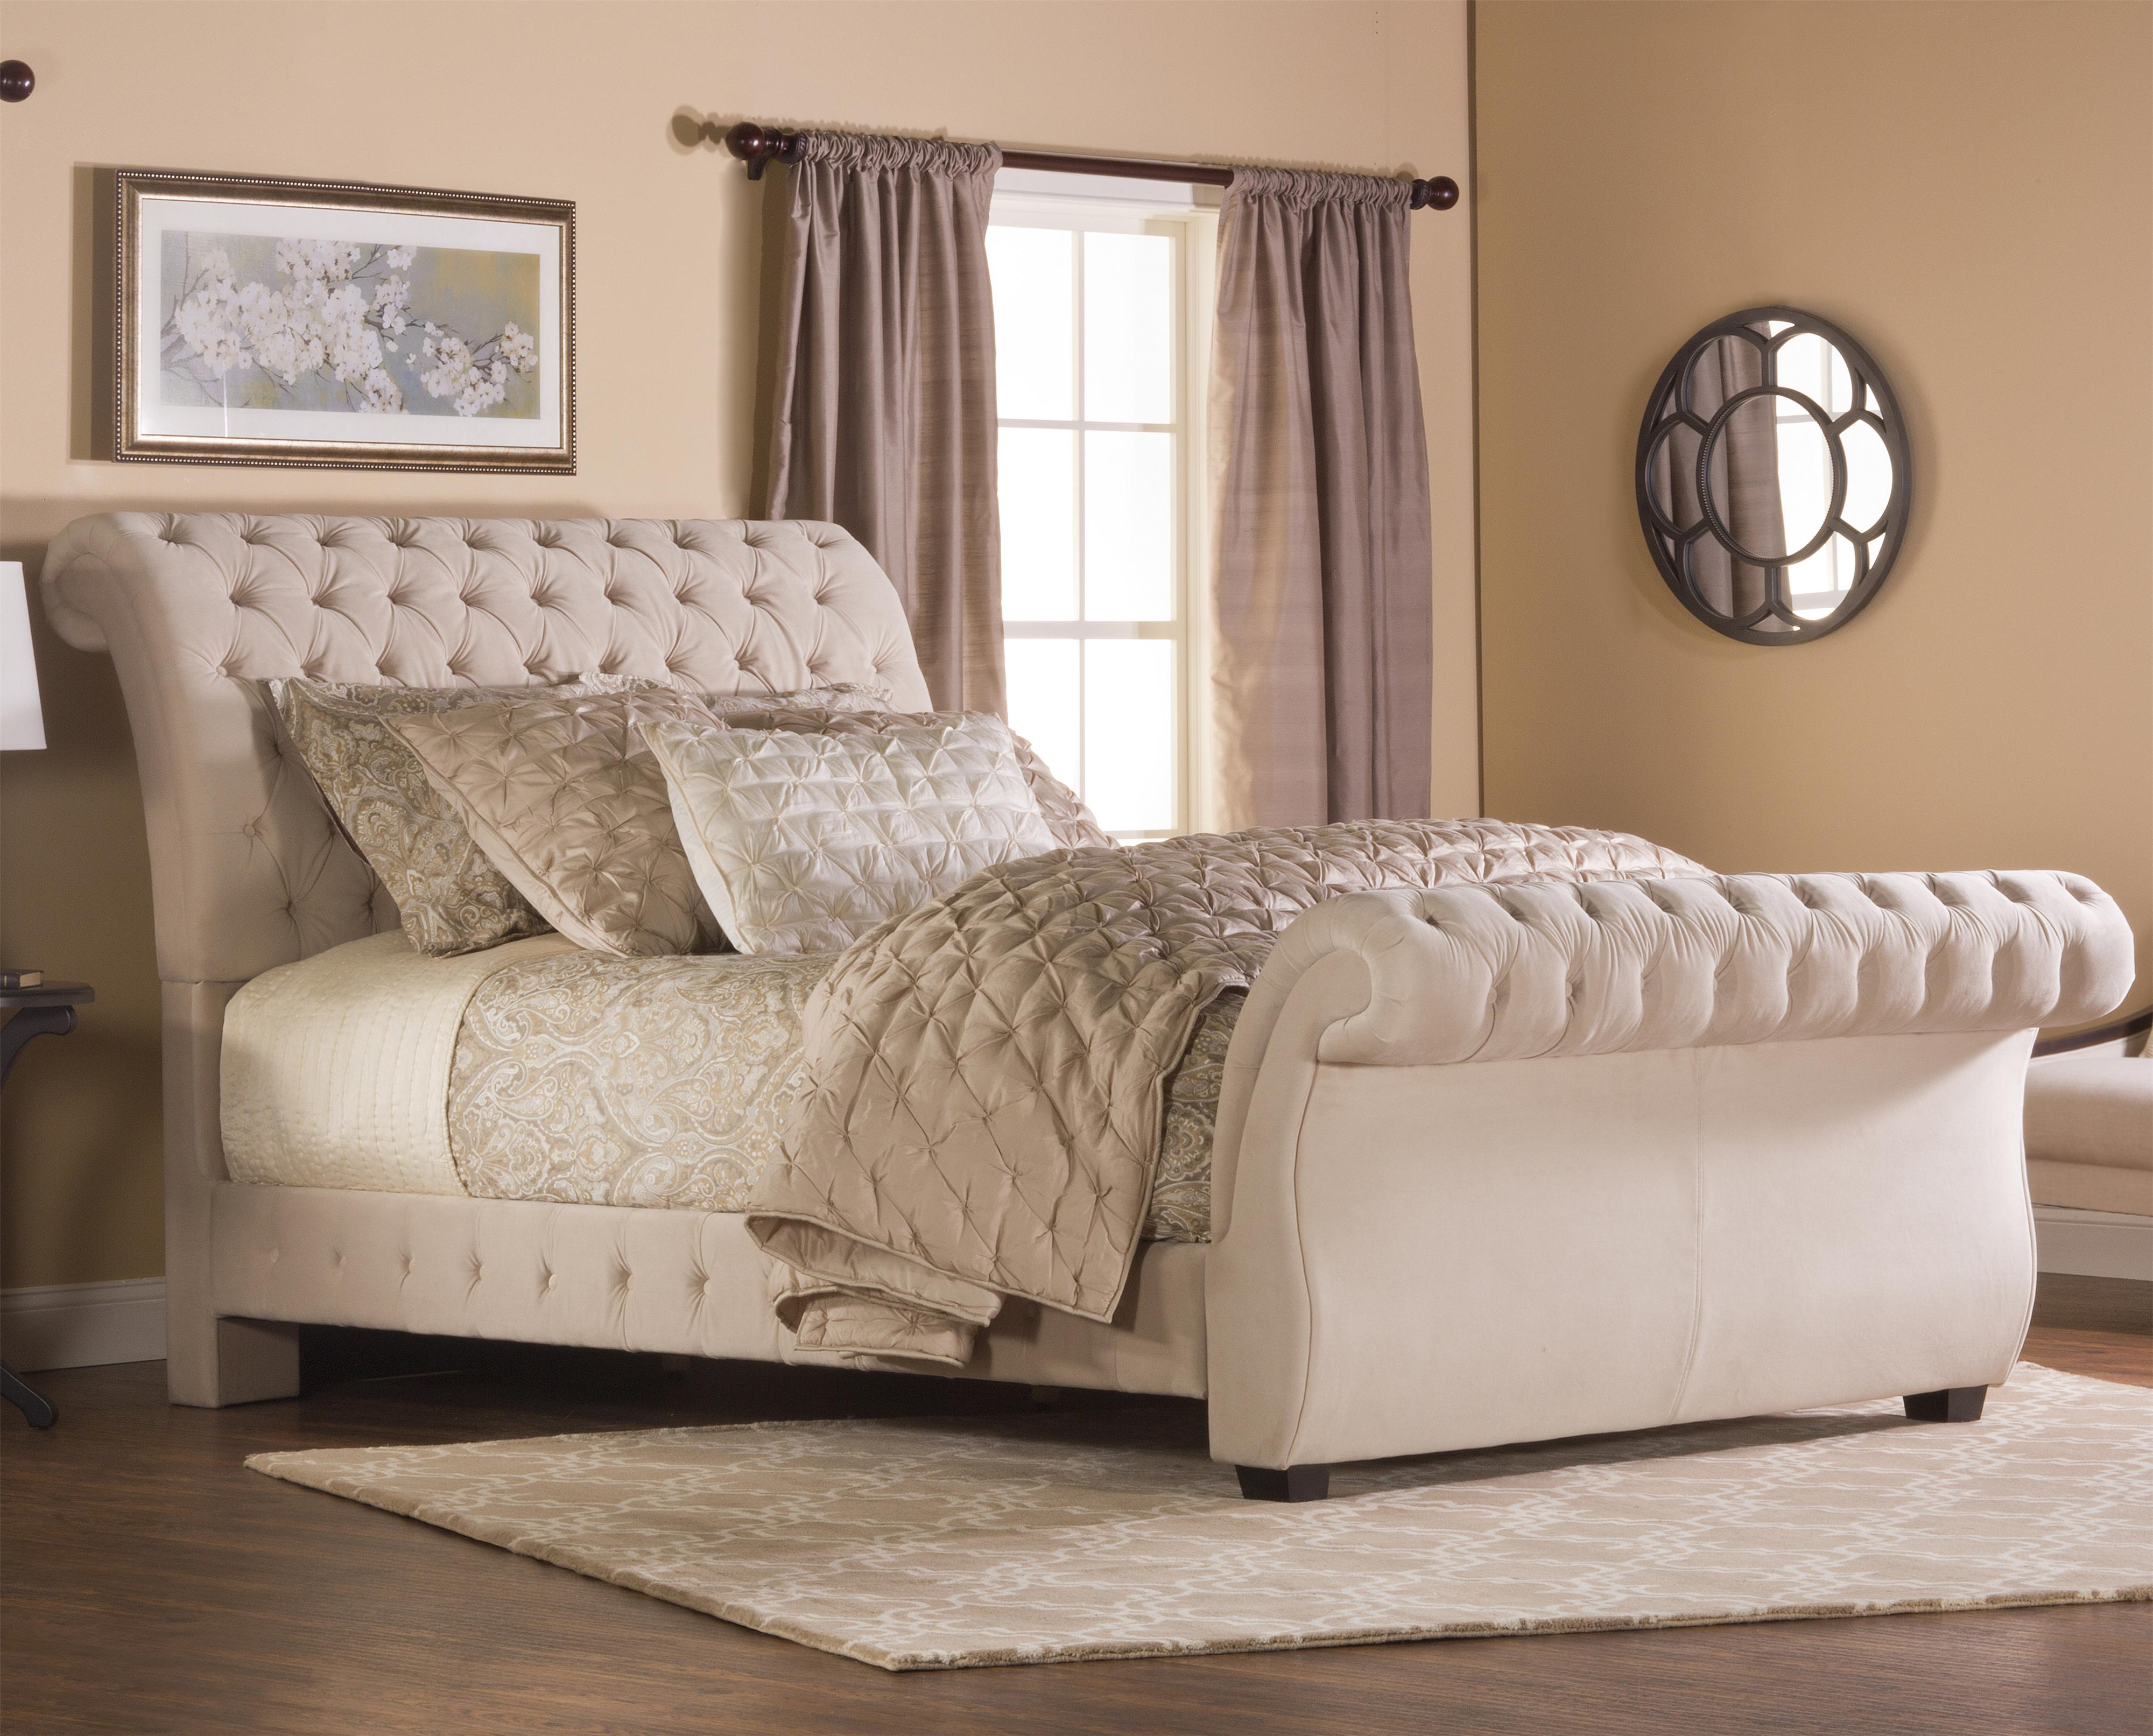 hillsdale upholstered beds queen bombay bed - item number: 1773-503+533 TUSCNZW